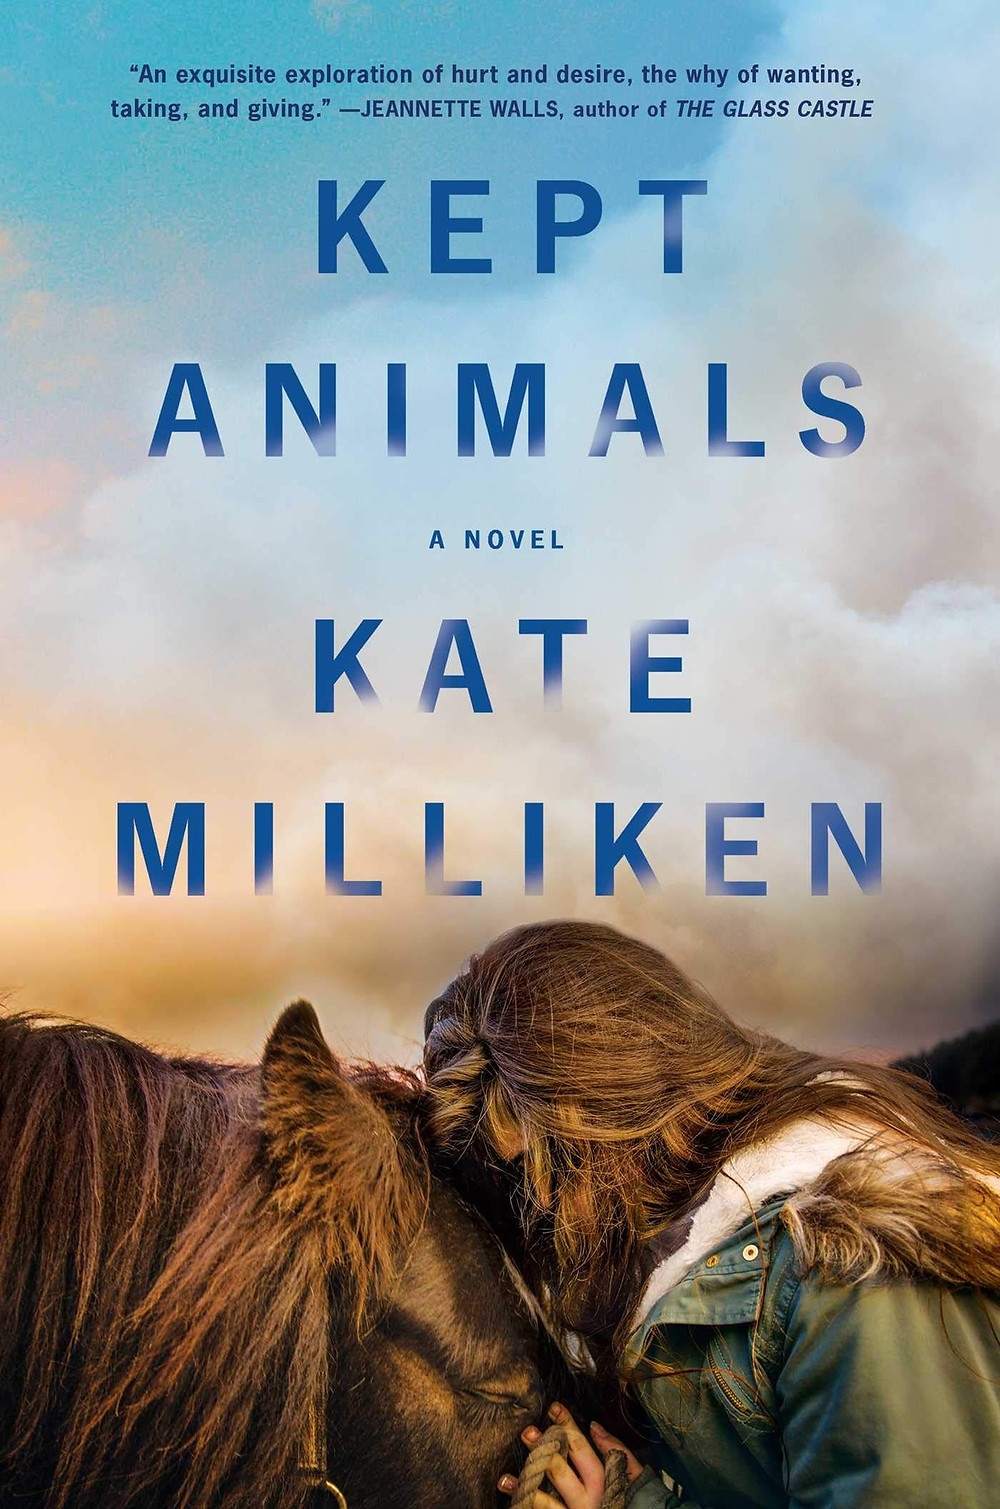 """""""Kept Animals is a darkly beautiful book, tender yet powerful, an exquisite exploration of hurt and desire, the why of wanting, taking, and giving. And Kate Milliken knows her stuff when it comes to horses."""" --Jeannette Walls, author of The Glass Castle and Half Broke Horses """"In this rugged and ravishing debut, a tragic car accident upends the lives of multiple Southern California families--particularly three teenage girls, whose lives and desires intersect in ways none of them could have imagined."""" --O, The Oprah Magazine A bold, riveting debut novel of desire, betrayal, and loss, centering on three teenage girls, a horse ranch, and the accident that changes everything. It's 1993, and Rory Ramos works as a ranch hand at the stable her stepfather manages in Topanga Canyon, California, a dry, dusty place reliant on horses and hierarchies. There she rides for the rich clientele, including twins June and Wade Fisk. While Rory draws the interest of out-and-proud June, she's more intrigued by Vivian Price, the beautiful girl with the movie-star father who lives down the hill. Rory keeps largely separate from the likes of the Prices--but, perched on her bedroom windowsill, Rory steals glimpses of Vivian swimming in her pool nearly every night. After Rory's stepfather is involved in a tragic car accident, the lives of Rory, June, and Vivian become inextricably bound together. Rory discovers photography, begins riding more competitively, and grows closer to gorgeous, mercurial Vivian, but despite her newfound sense of self, disaster lurks all around her: in the parched landscape, in her unruly desires, in her stepfather's wrecked body and guilty conscience.One night, as the relationships among these teenagers come to a head, a forest fire tears through the canyon, and Rory's life is changed forever. Kept Animals is narrated by Rory's daughter, Charlie, in 2015, more than twenty years after that fateful fire. Realizing that the key to her own existence lies in the secret of """